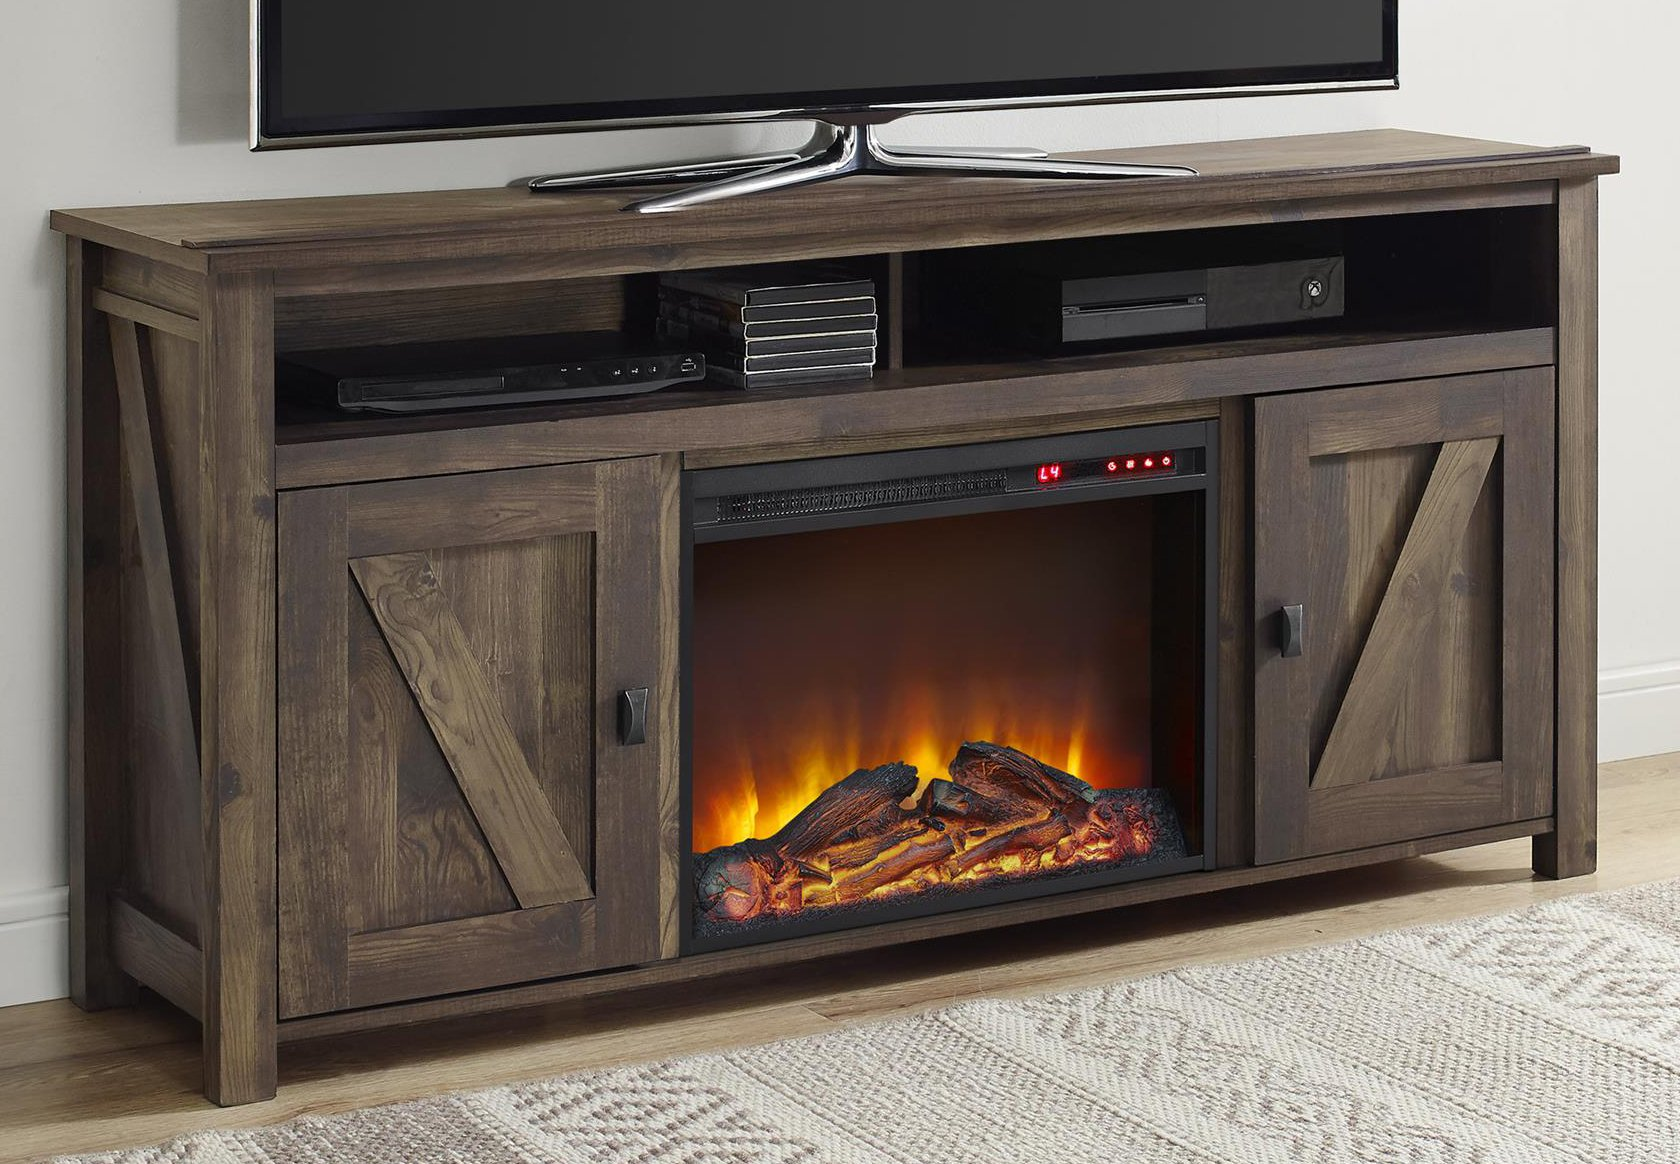 Ameriwood Home Farmington Electric Fireplace TV Console for TVs up to 60'', Rustic